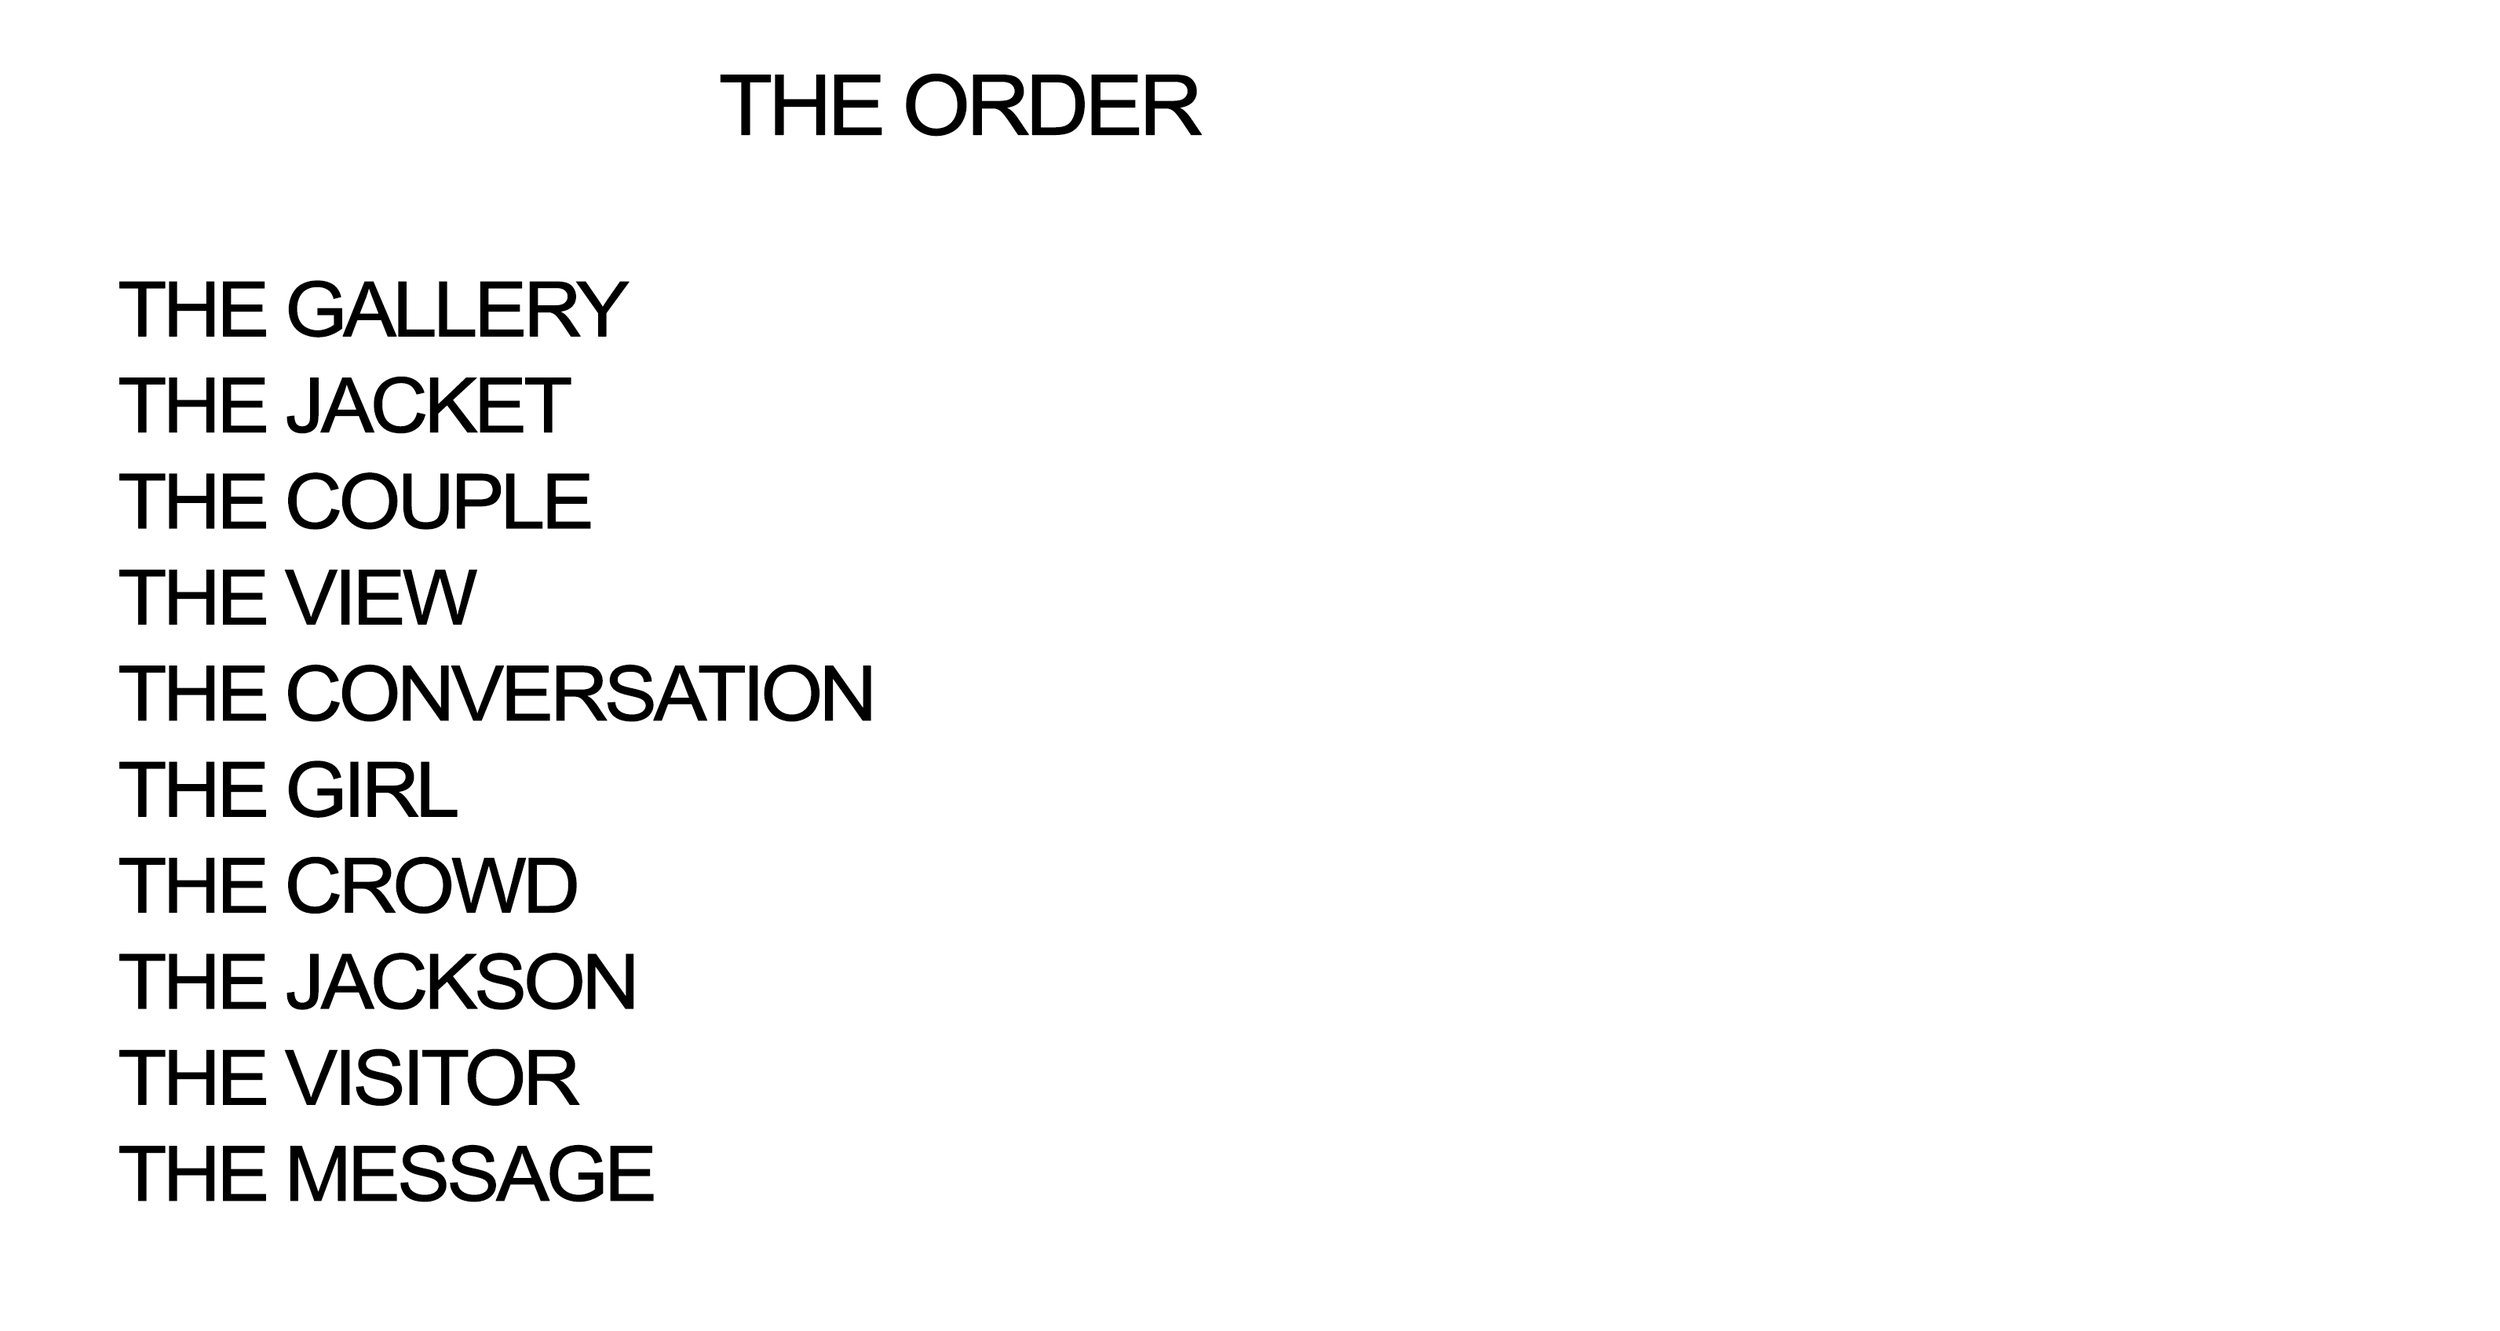 THE ORDER_images.jpg